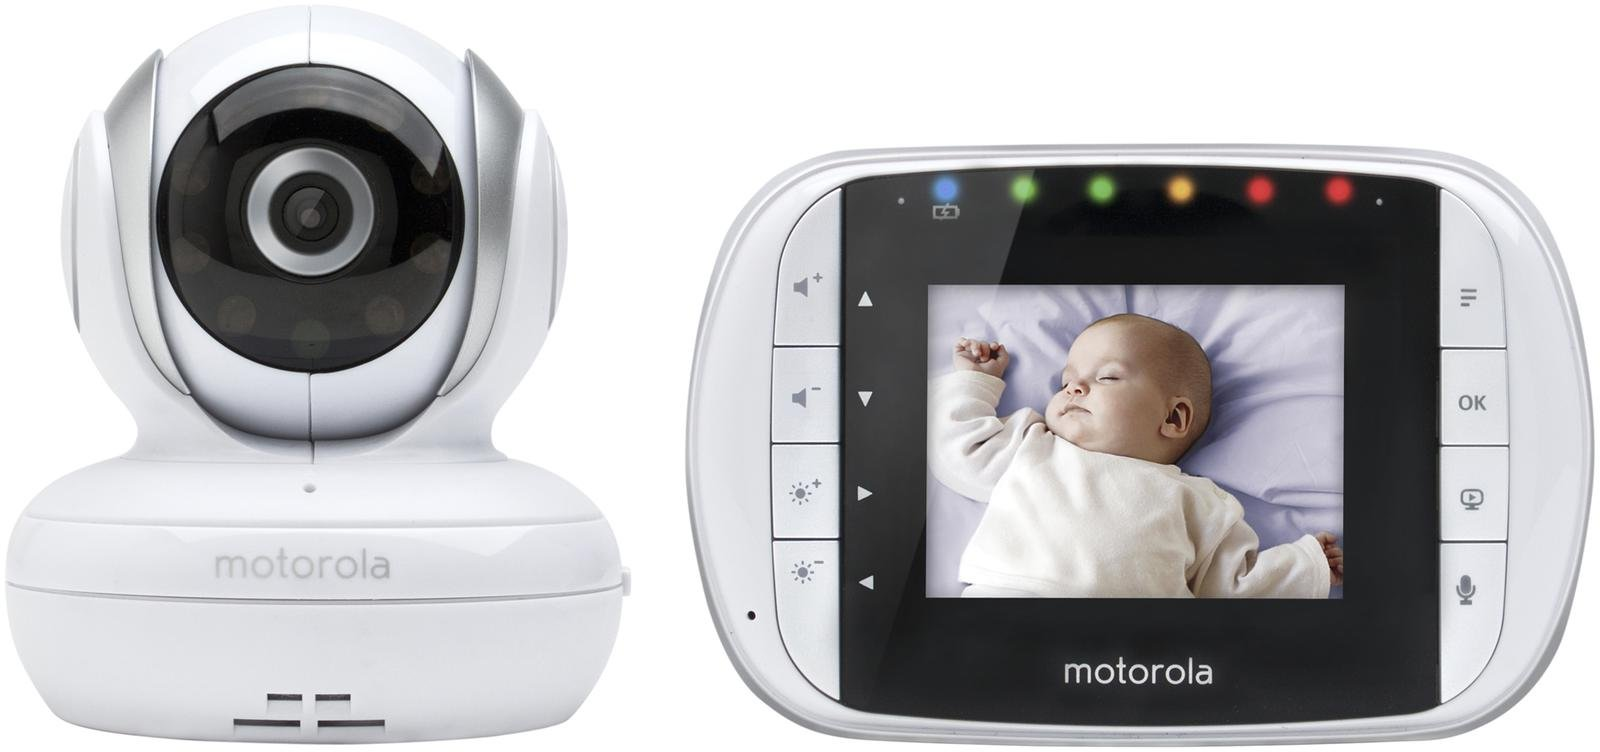 Motorola Remote Wireless Baby Monitor - MBP33S